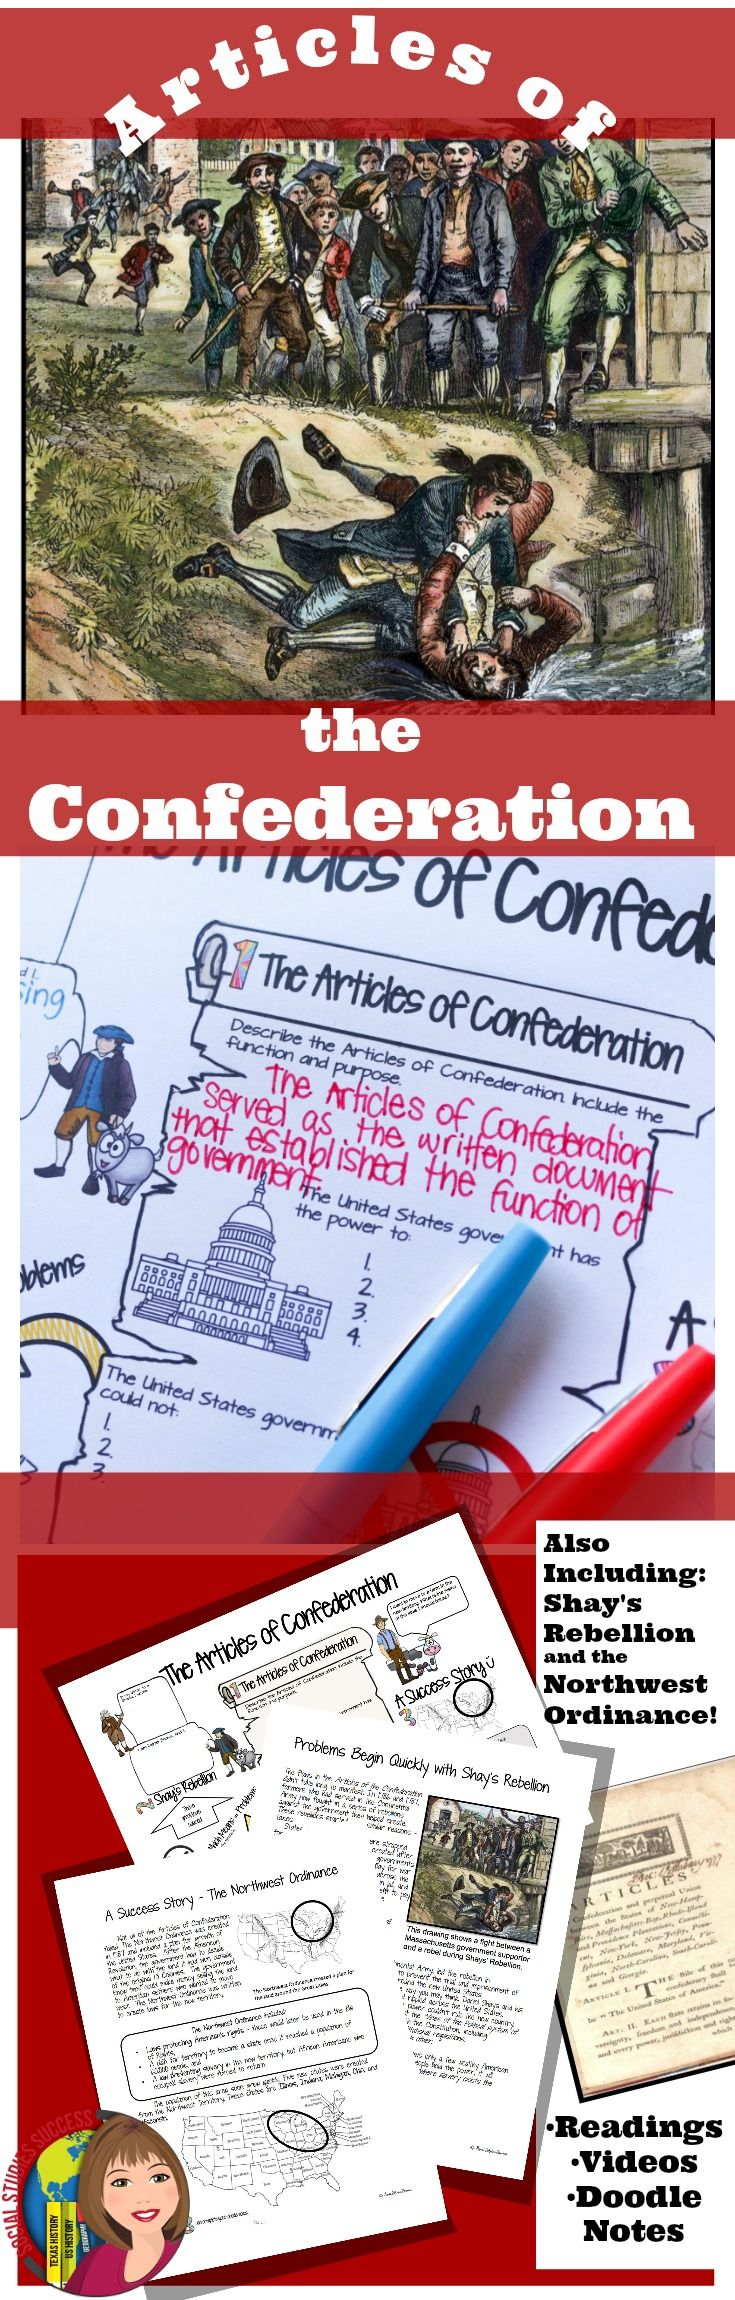 Kids love Doodle Notes! Do something different this year with your Articles of Confederation! Engage your students with a reading and Doodle Notes.  In this activity, students will read about the Articles of Confederation, Shays' Rebellion and the Northwest Ordinance. Each one page reading has a corresponding section to complete on the Doodle Notes. A QR Code link is included in the reading.